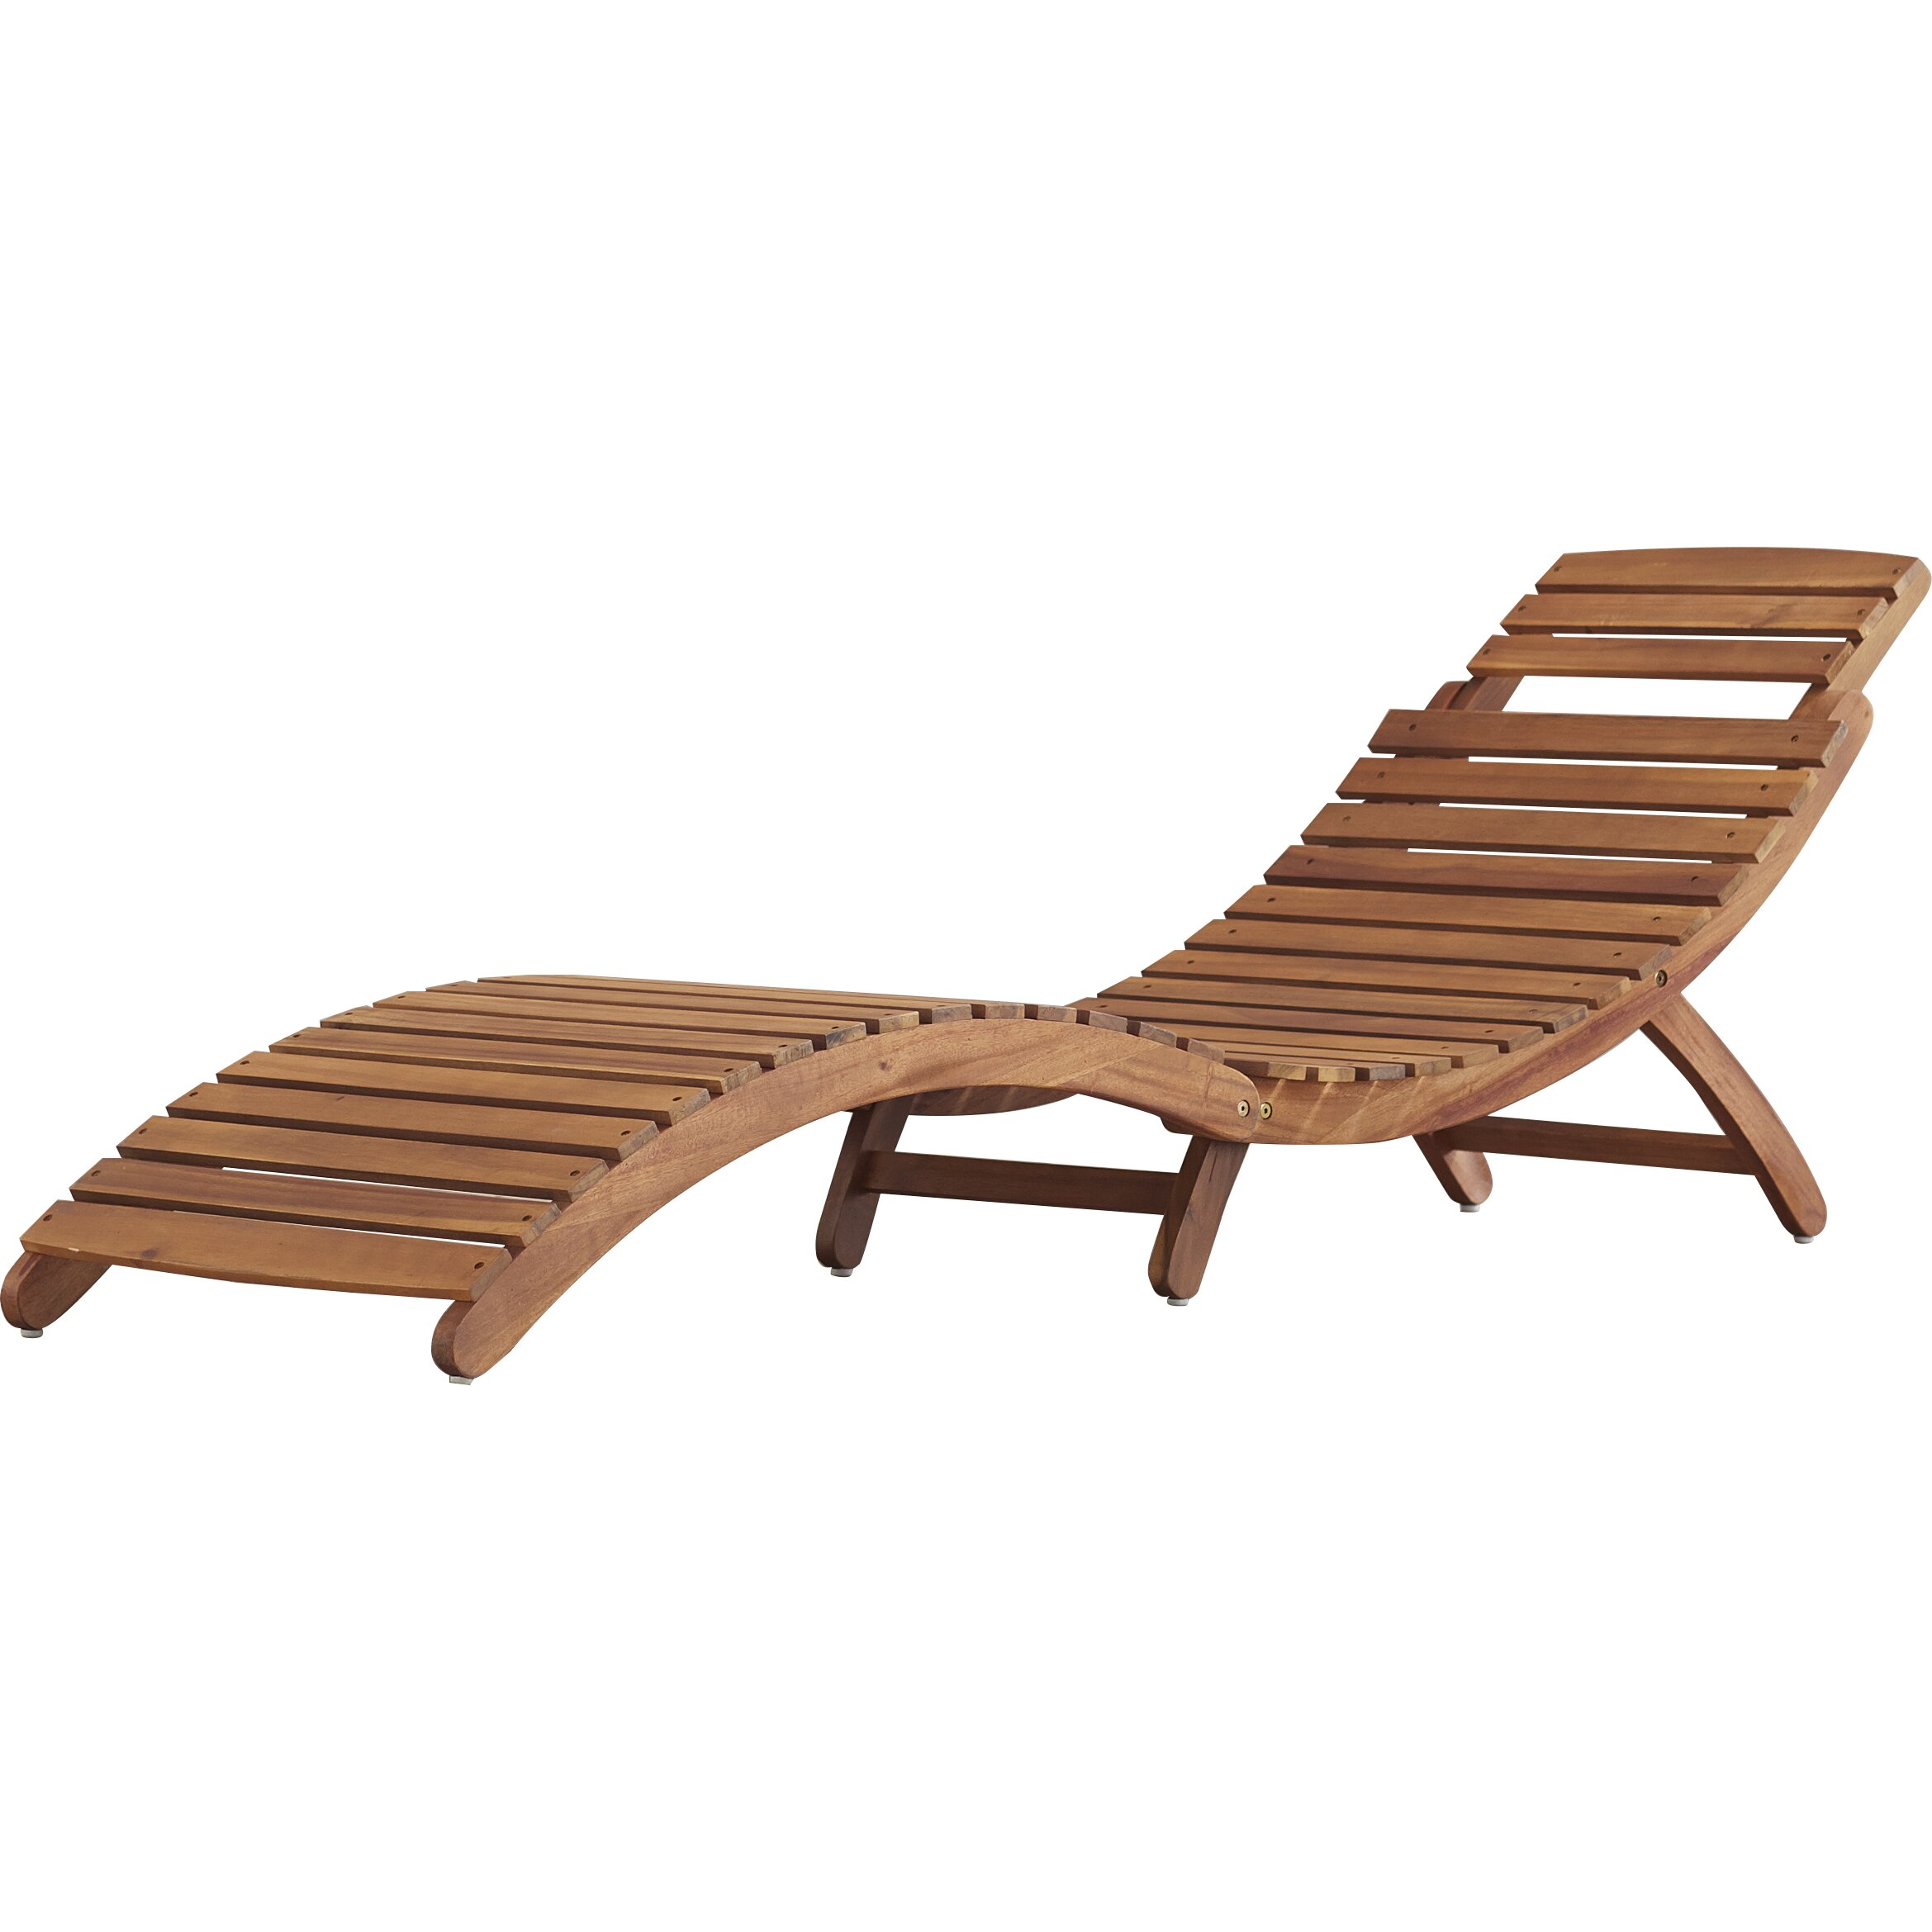 bay isle home philodendron wood outdoor chaise lounge. Black Bedroom Furniture Sets. Home Design Ideas